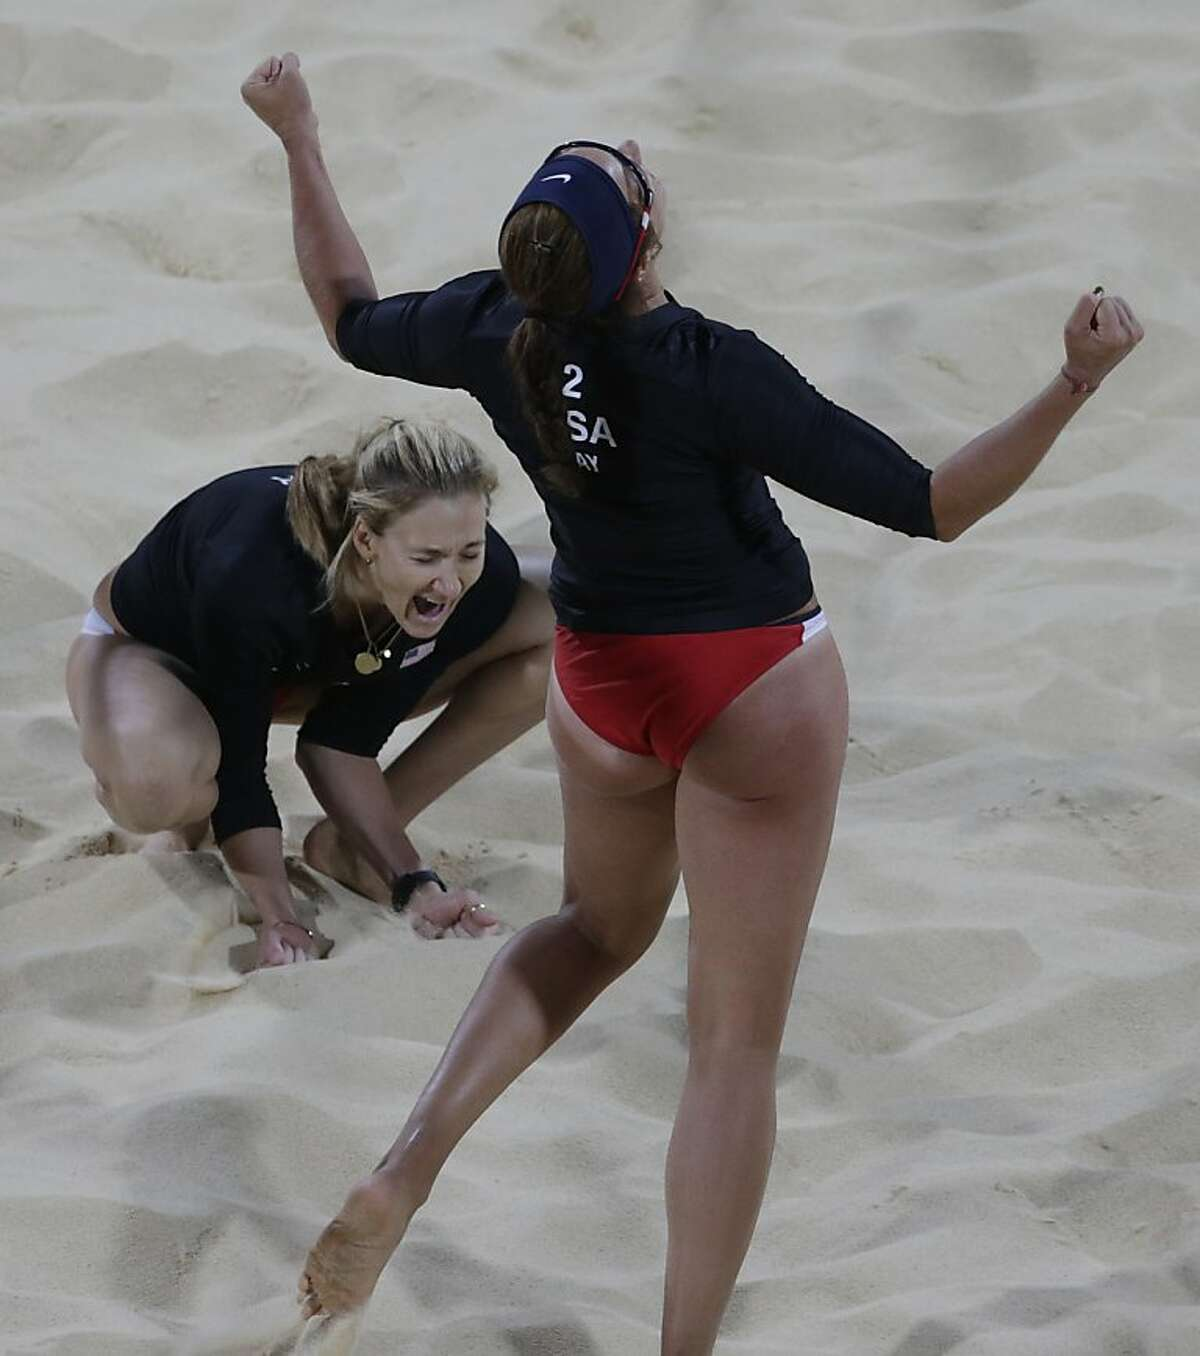 Kerri Walsh, left, of the United States reacts with teammate Misty May-Treanor react after beating Australia during a beach volleyball match at the 2012 Summer Olympics, Saturday, July 28, 2012, in London. (AP Photo/Dave Martin)